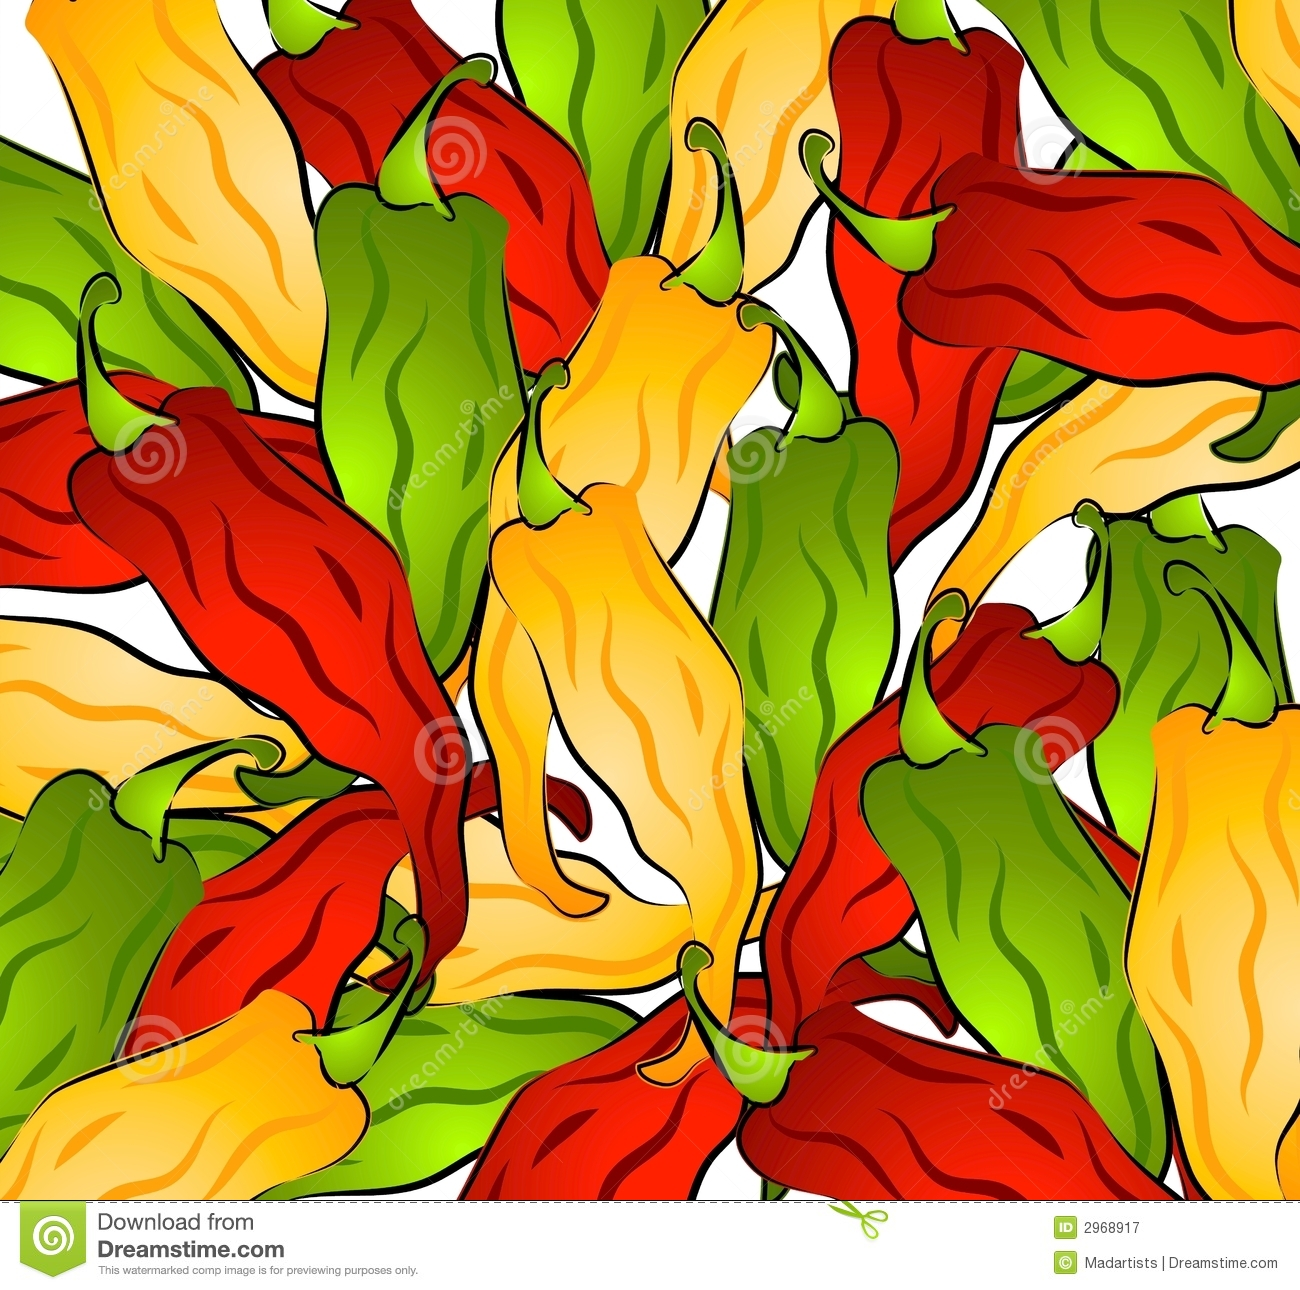 Hot Chili Peppers Clip Art Royalty Free Stock Photos - Image: 2968898